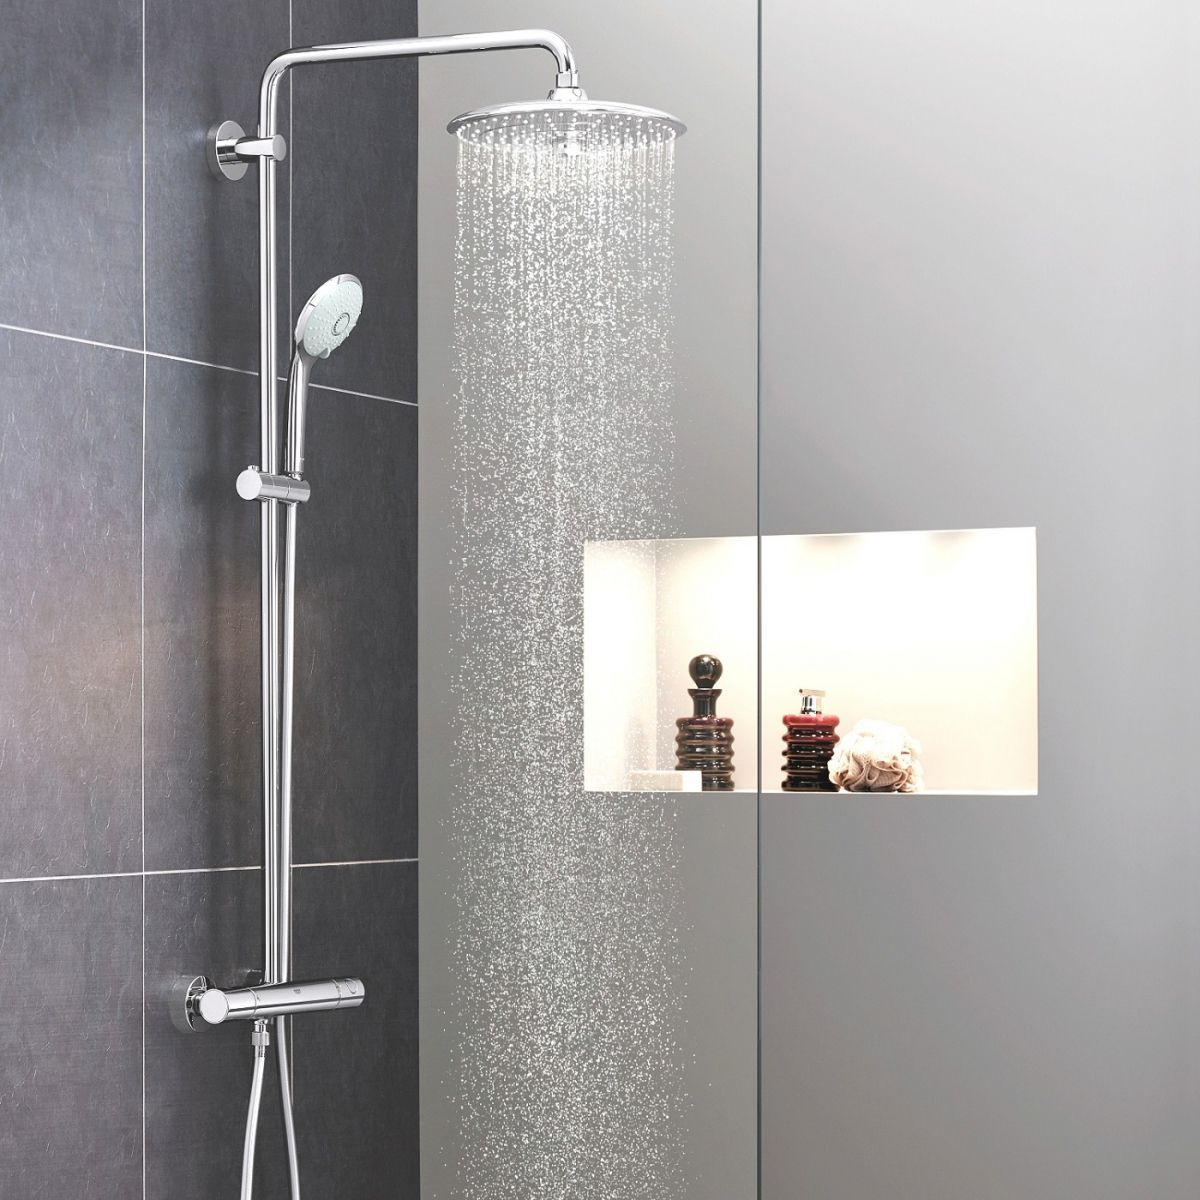 Latest design product news from ukbathrooms for Bathroom designs zimbabwe